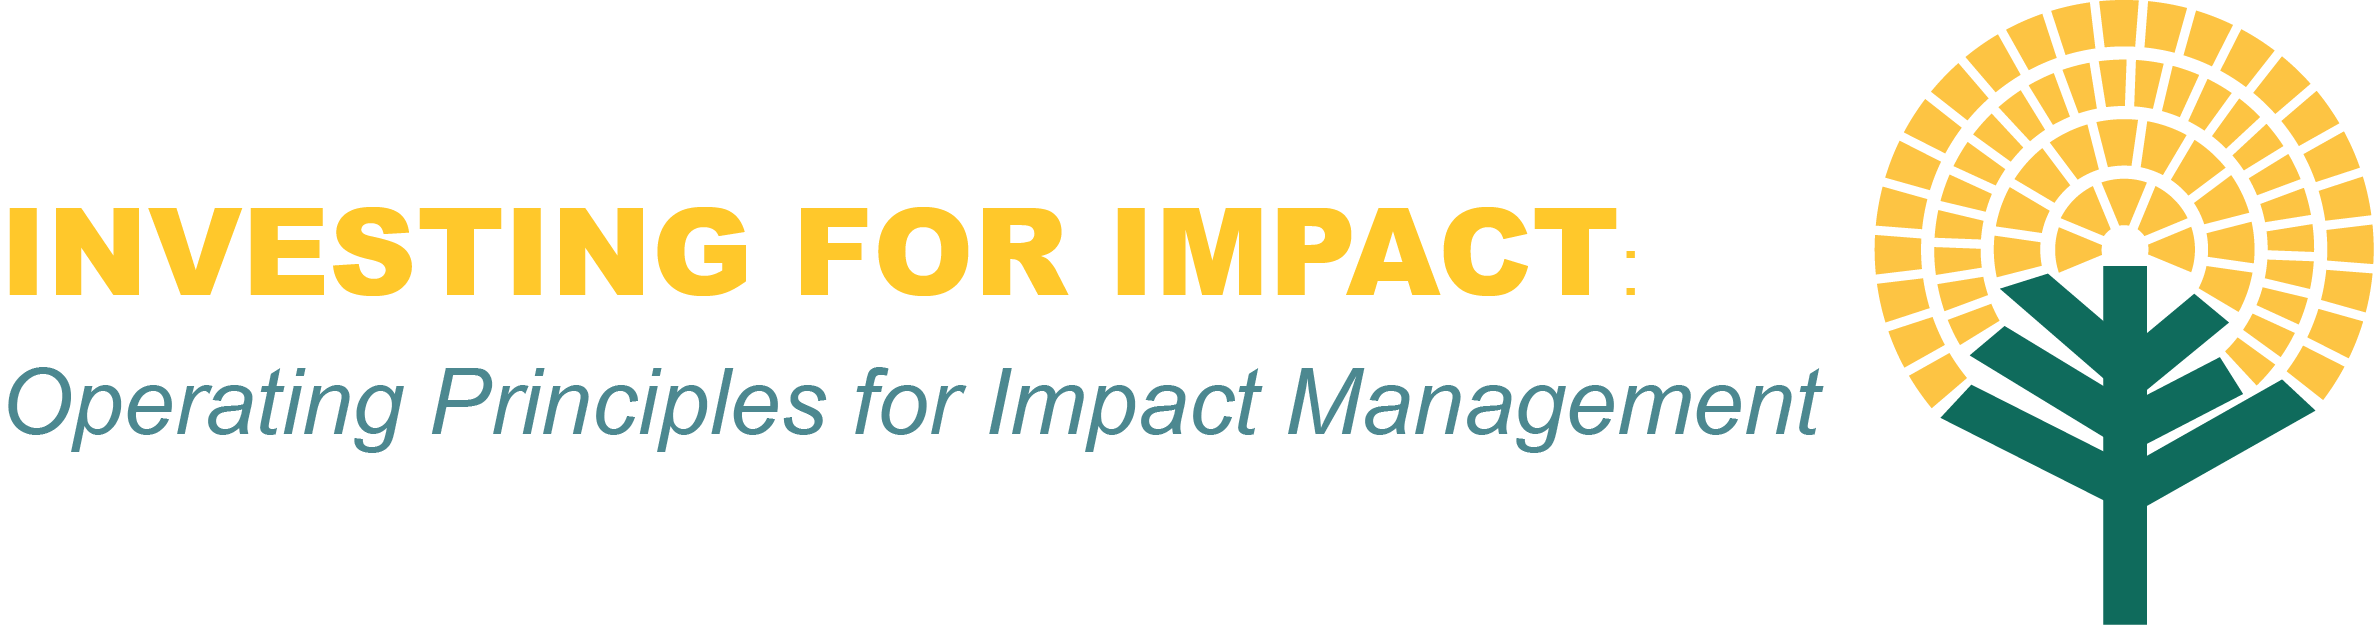 WaterEquity and the Operating Principles for Impact Management